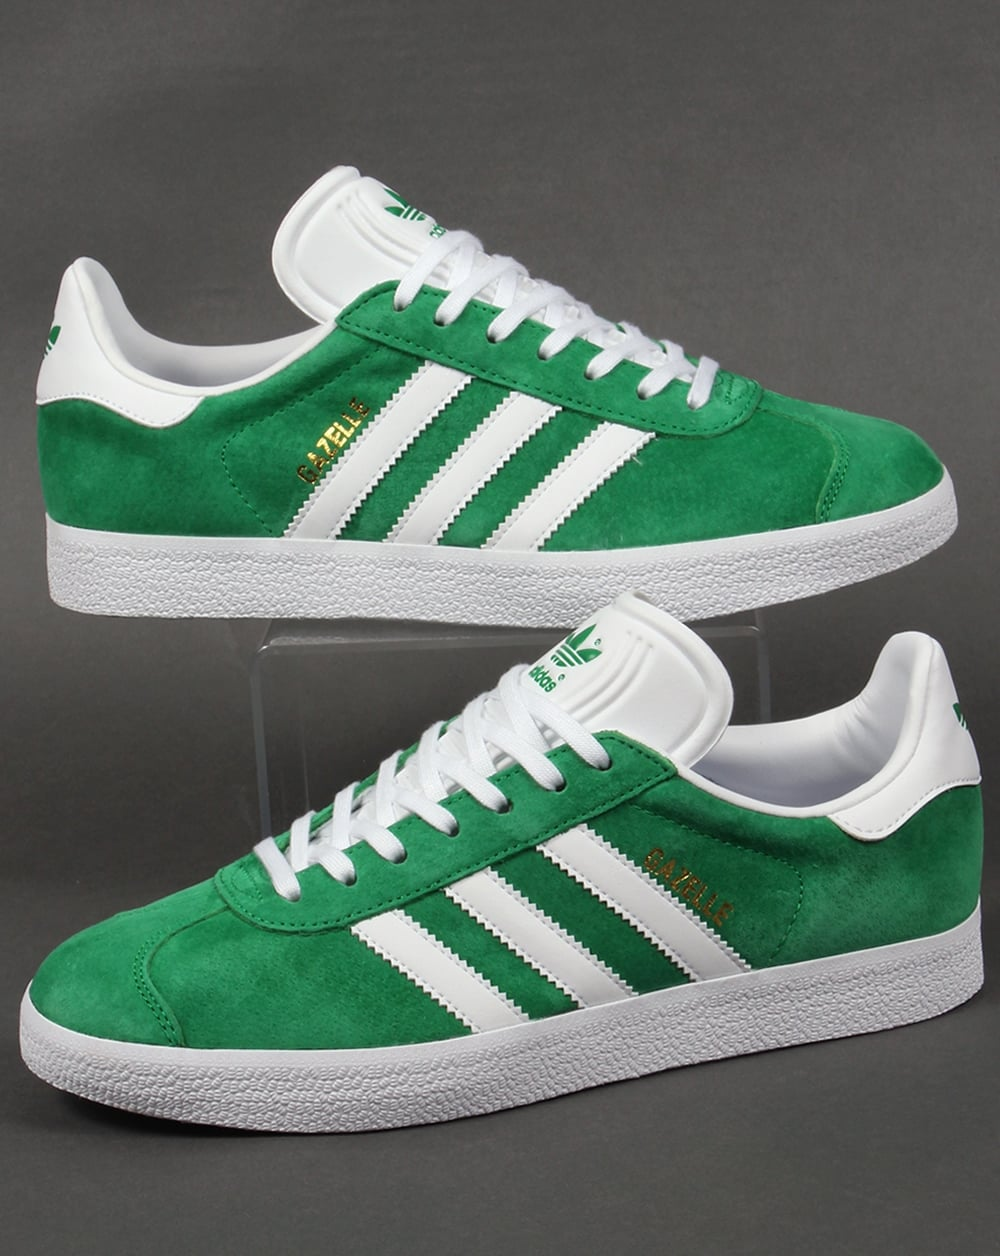 779d09d80e6 adidas Trainers Adidas Gazelle Trainers Green White